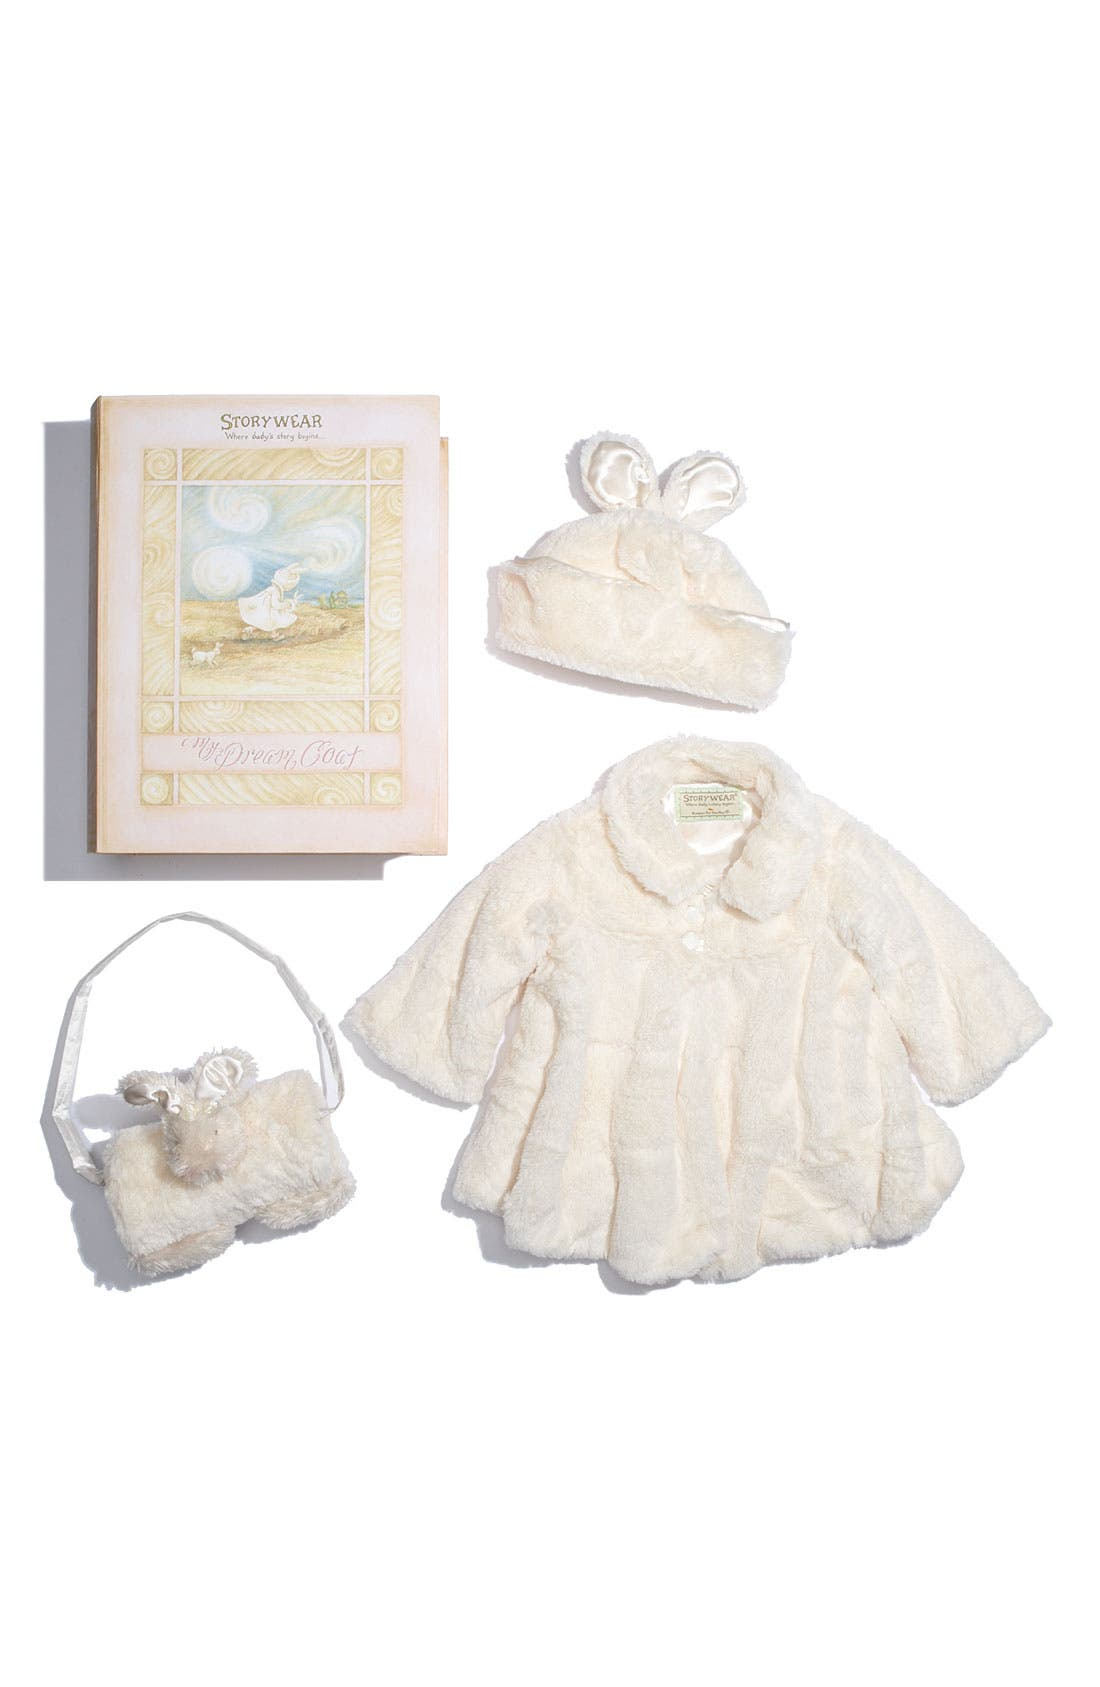 Alternate Image 1 Selected - Bunnies by the Bay 'Glad Dreams Coat Storywear' Set (Baby)